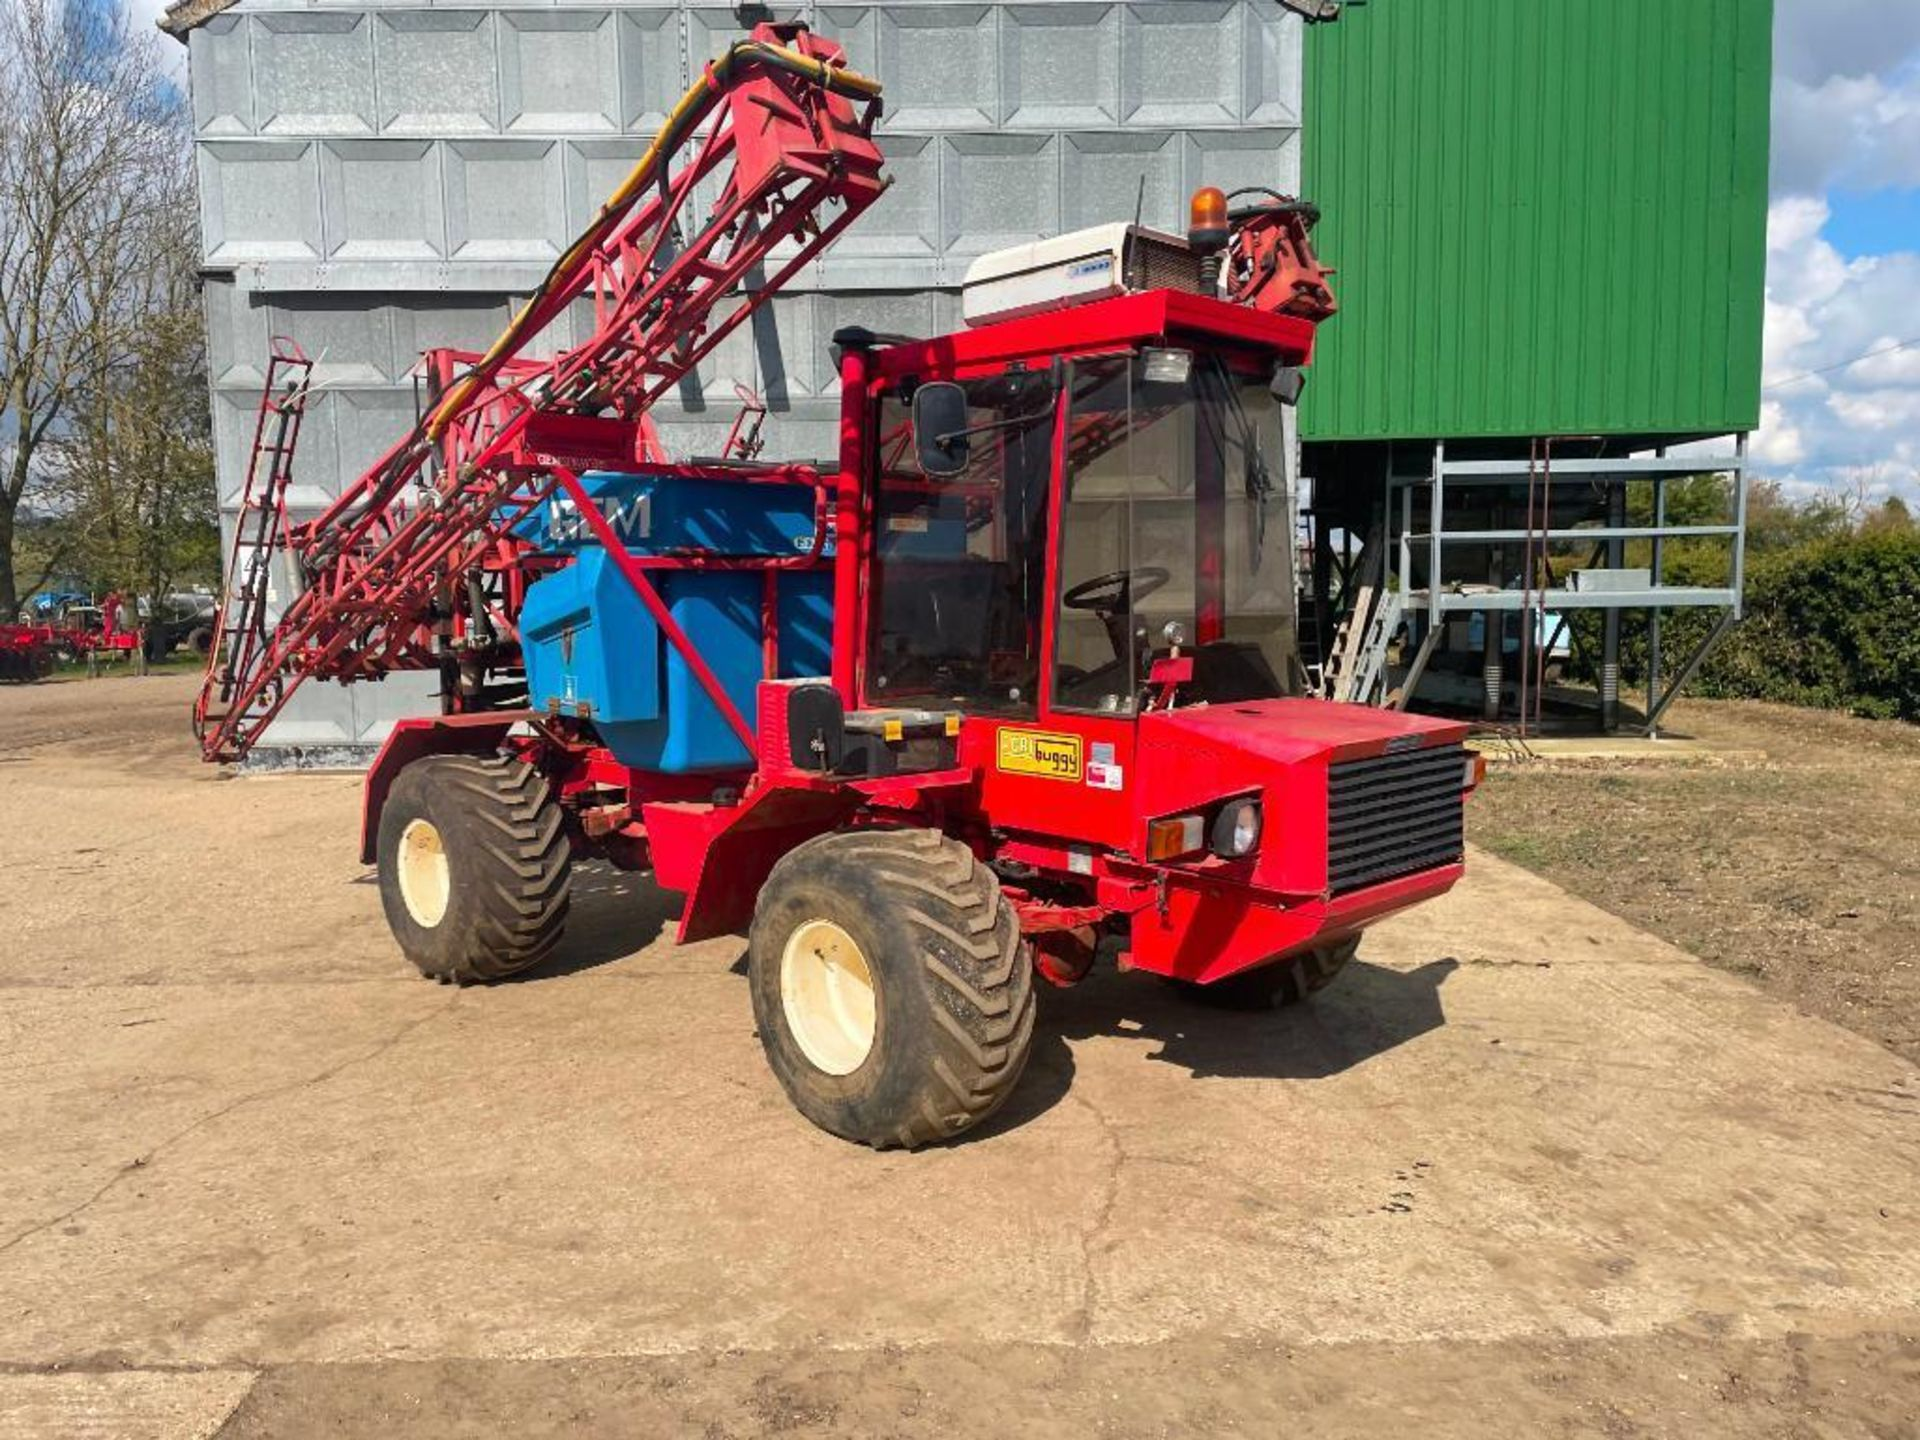 1995 Frazier Agri-Buggy SD with GEM 24m self propelled sprayer, 1500l tank on 38x20.00-16 wheels and - Image 5 of 27